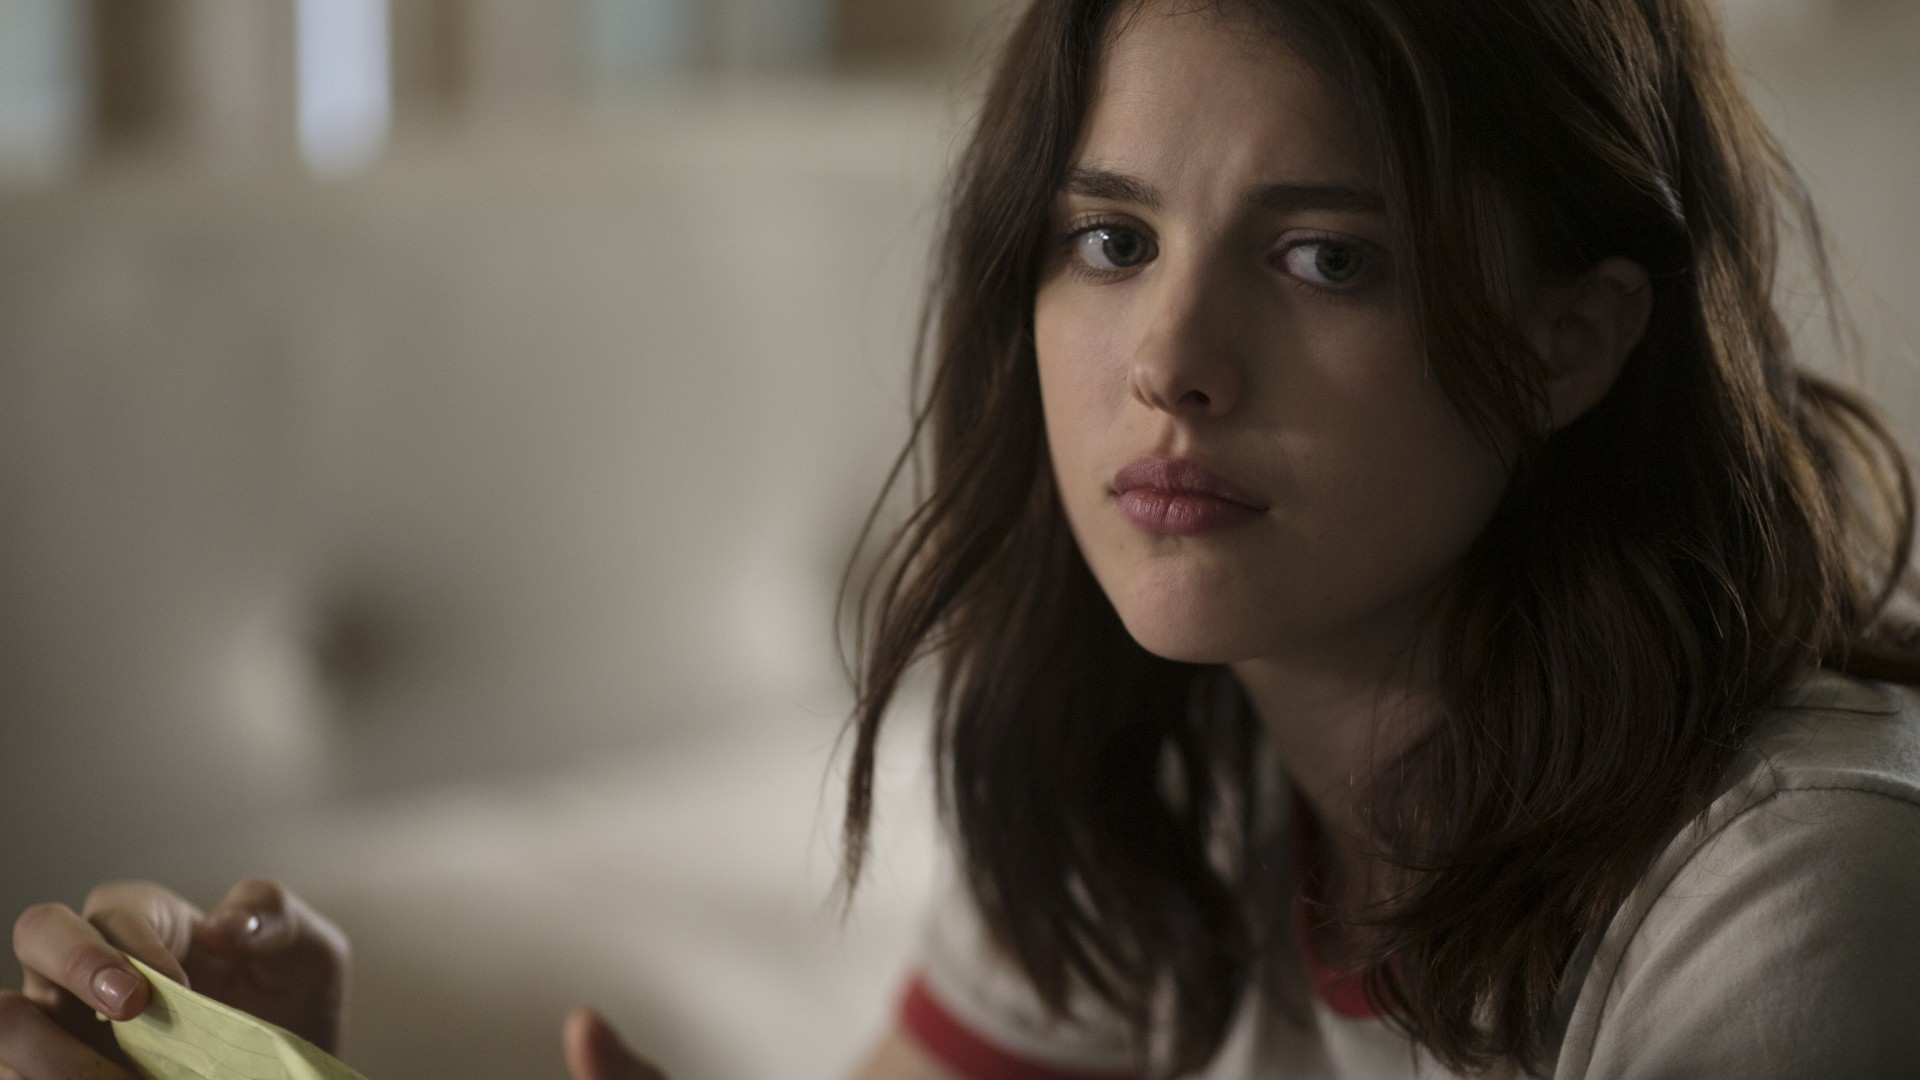 1920x1080 - Margaret Qualley Wallpapers 4